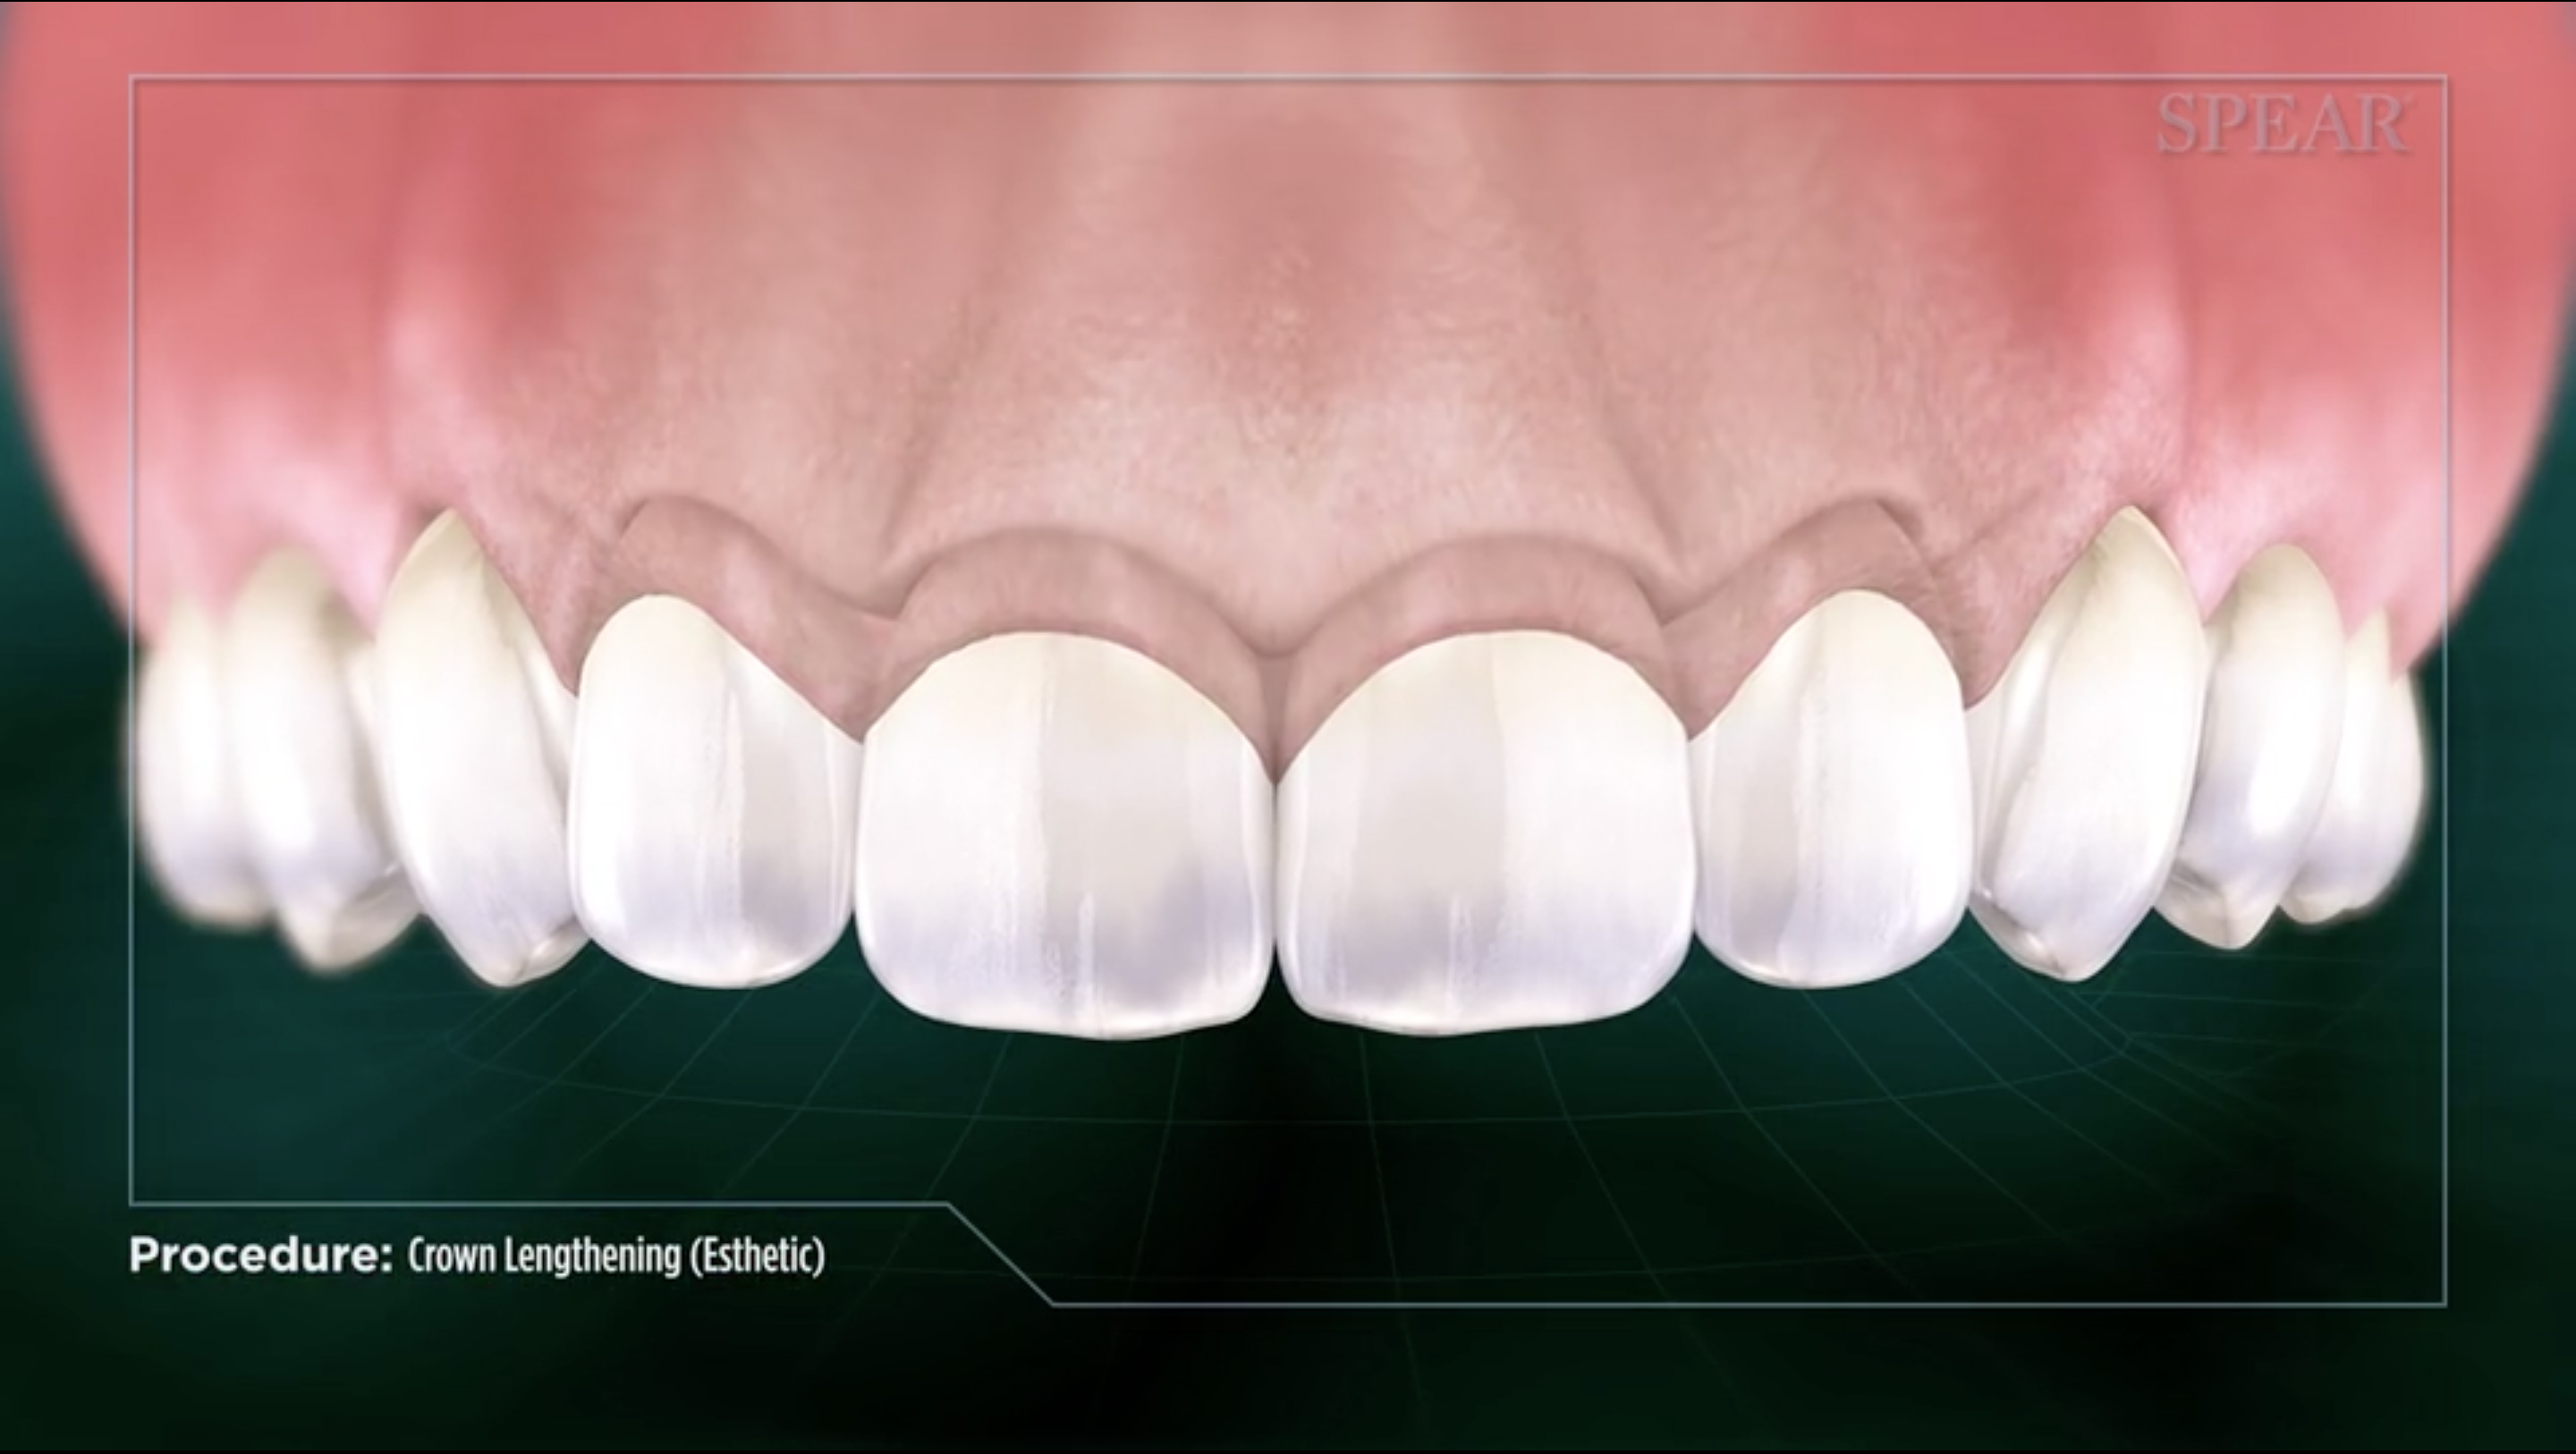 Clinical Crown Lengthening Chapel Hill Periodontics